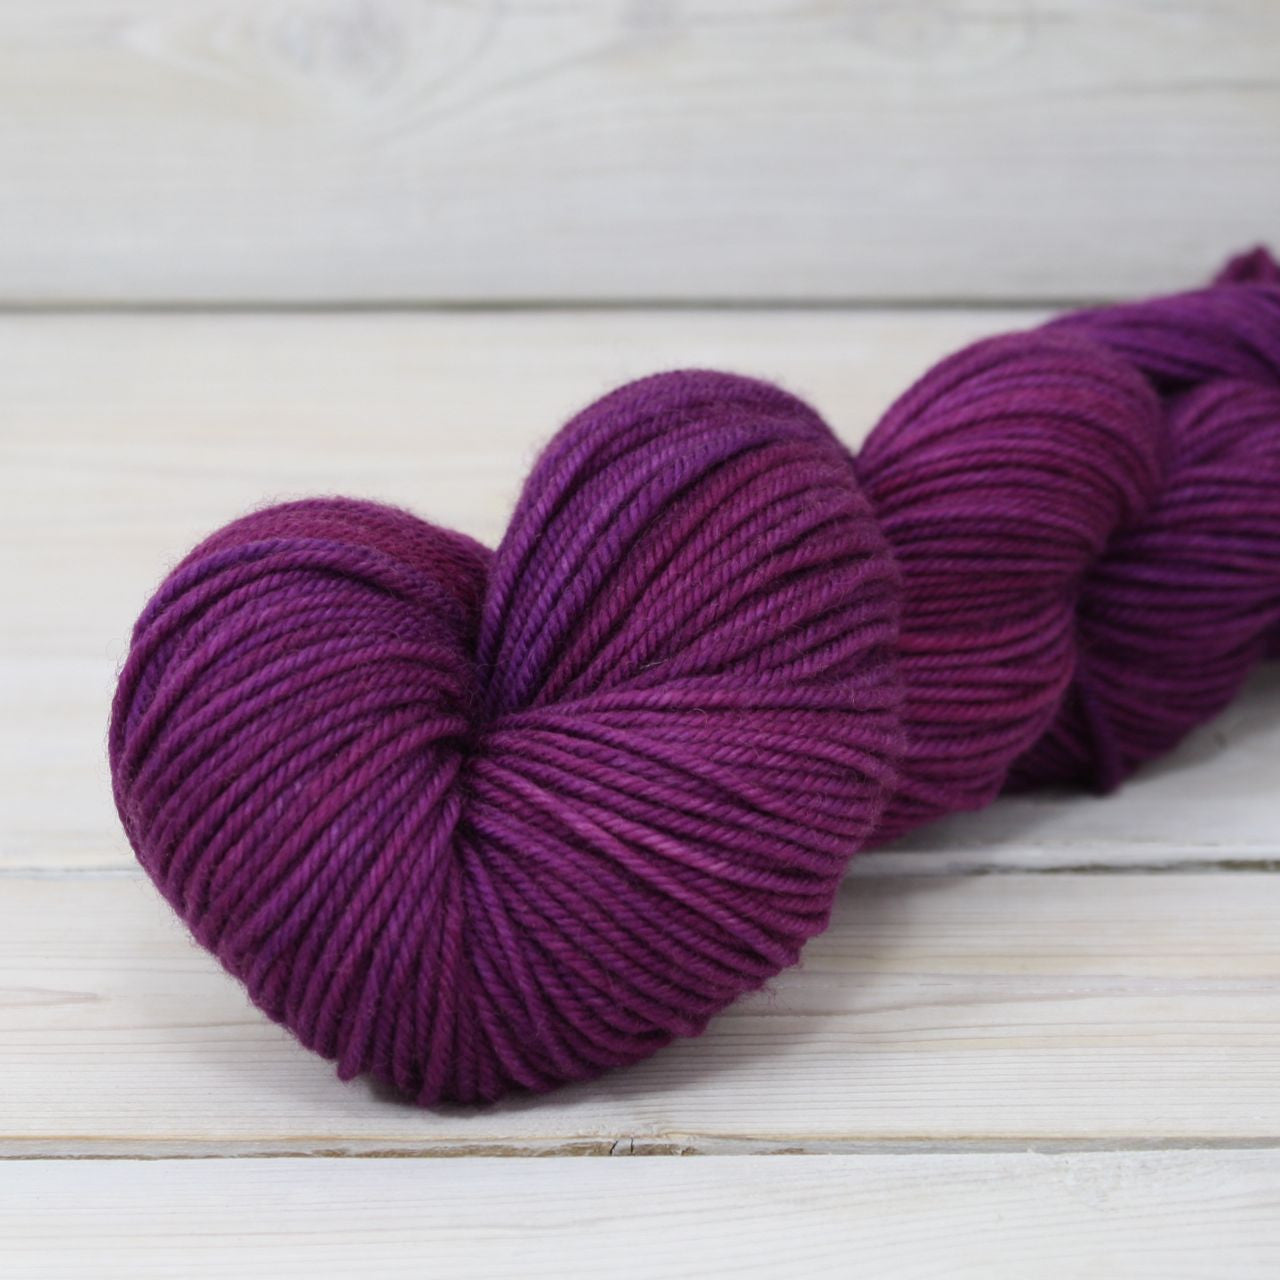 Calypso Yarn | Colorway: Jelly Bean